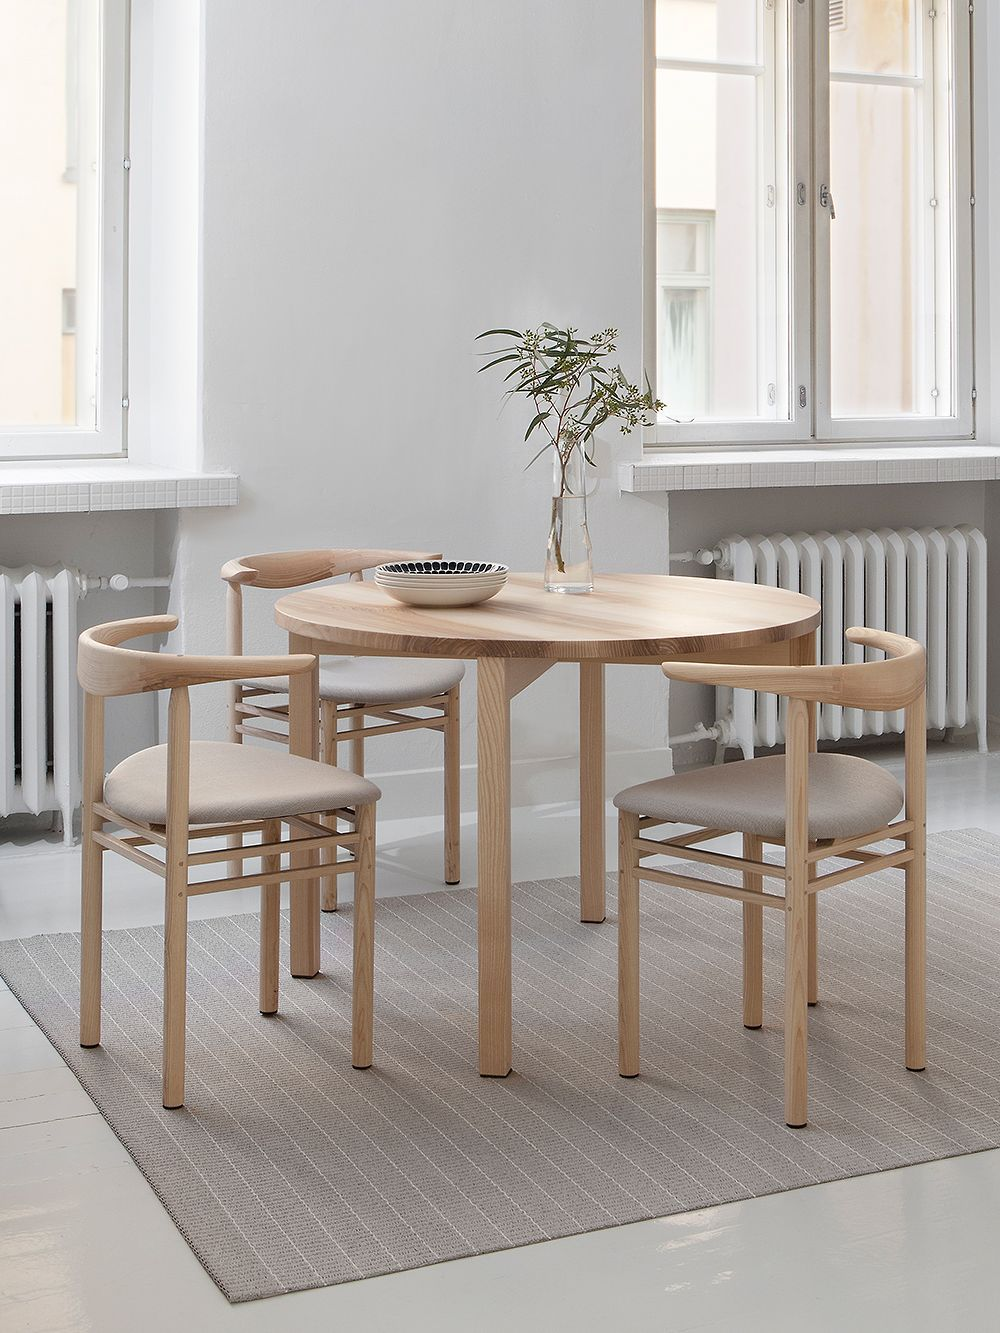 The Japandi Trend Combines Japanese And Nordic Design Language In A New Way Design Stories In 2020 Scandinavian Furniture Design Furniture Design Modern Nordic Design